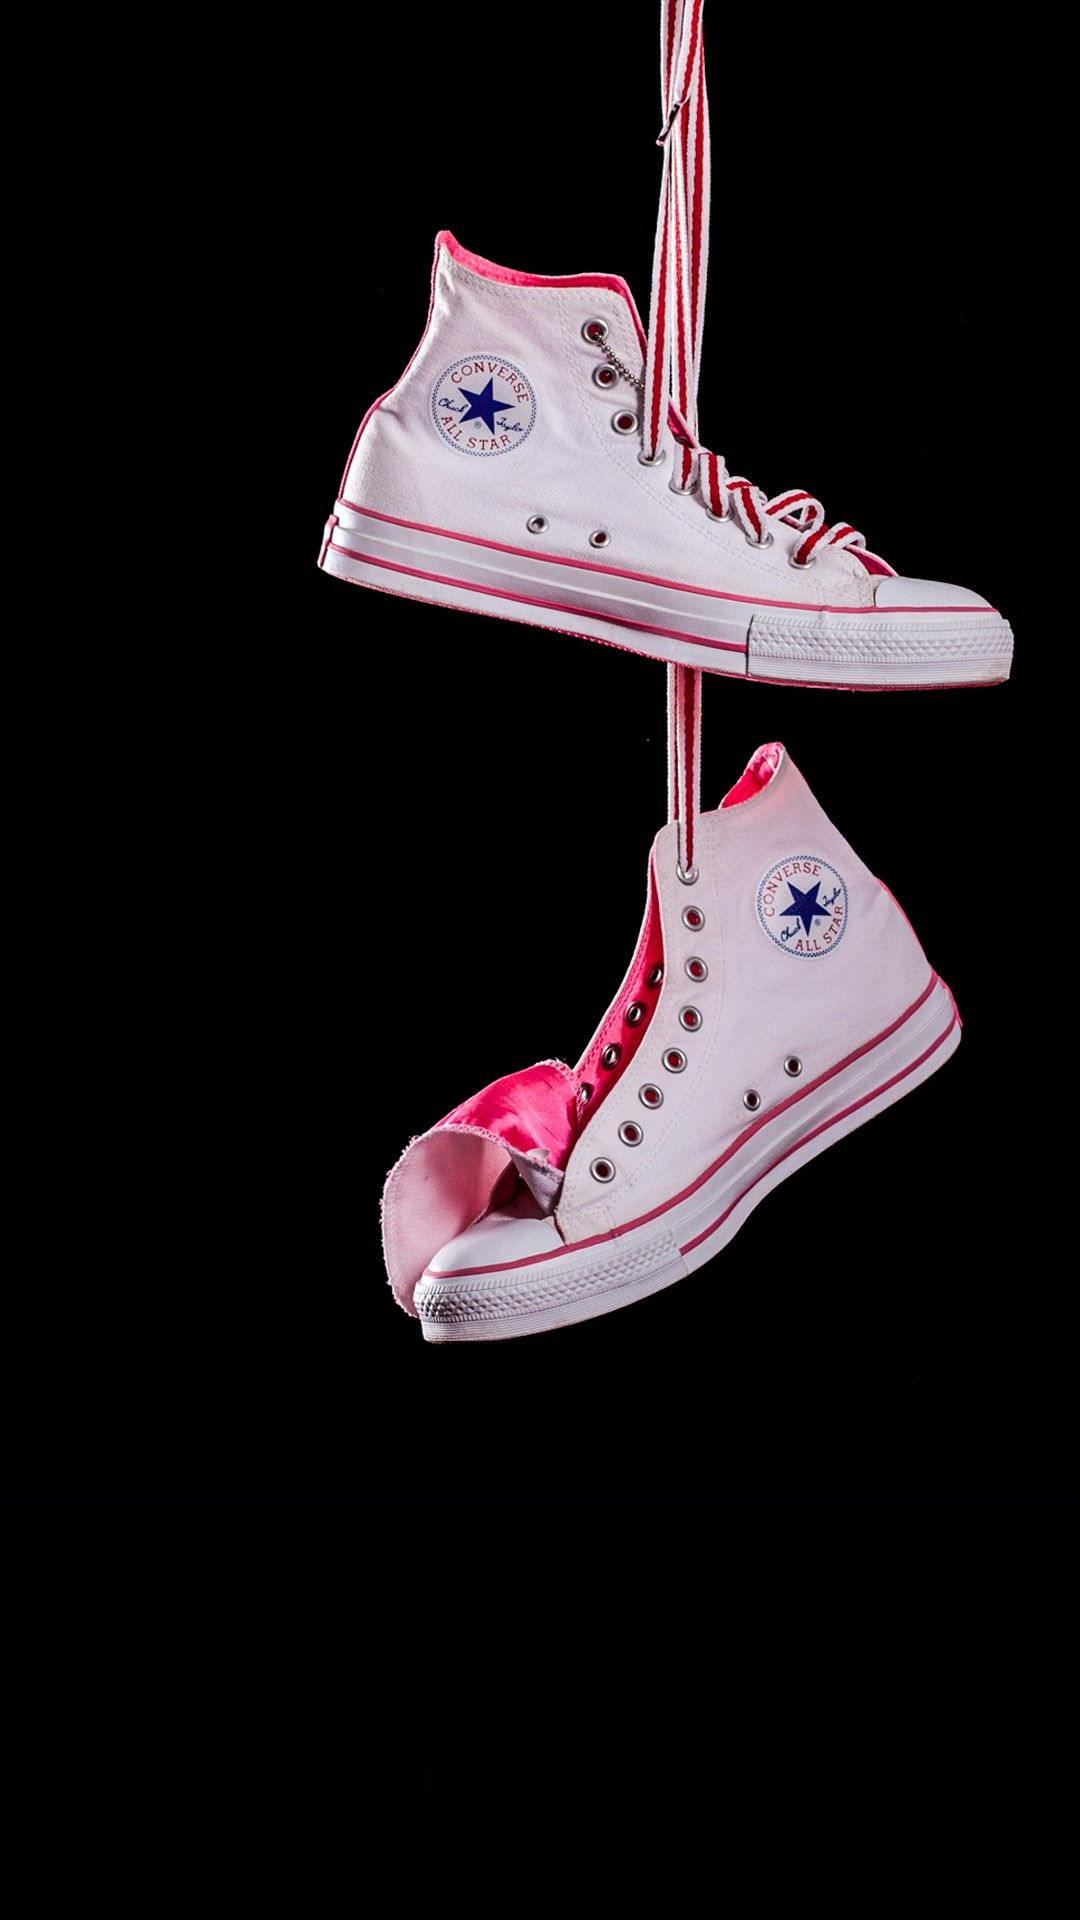 Misc iPhone 6 Plus Wallpapers Hanging Converse White